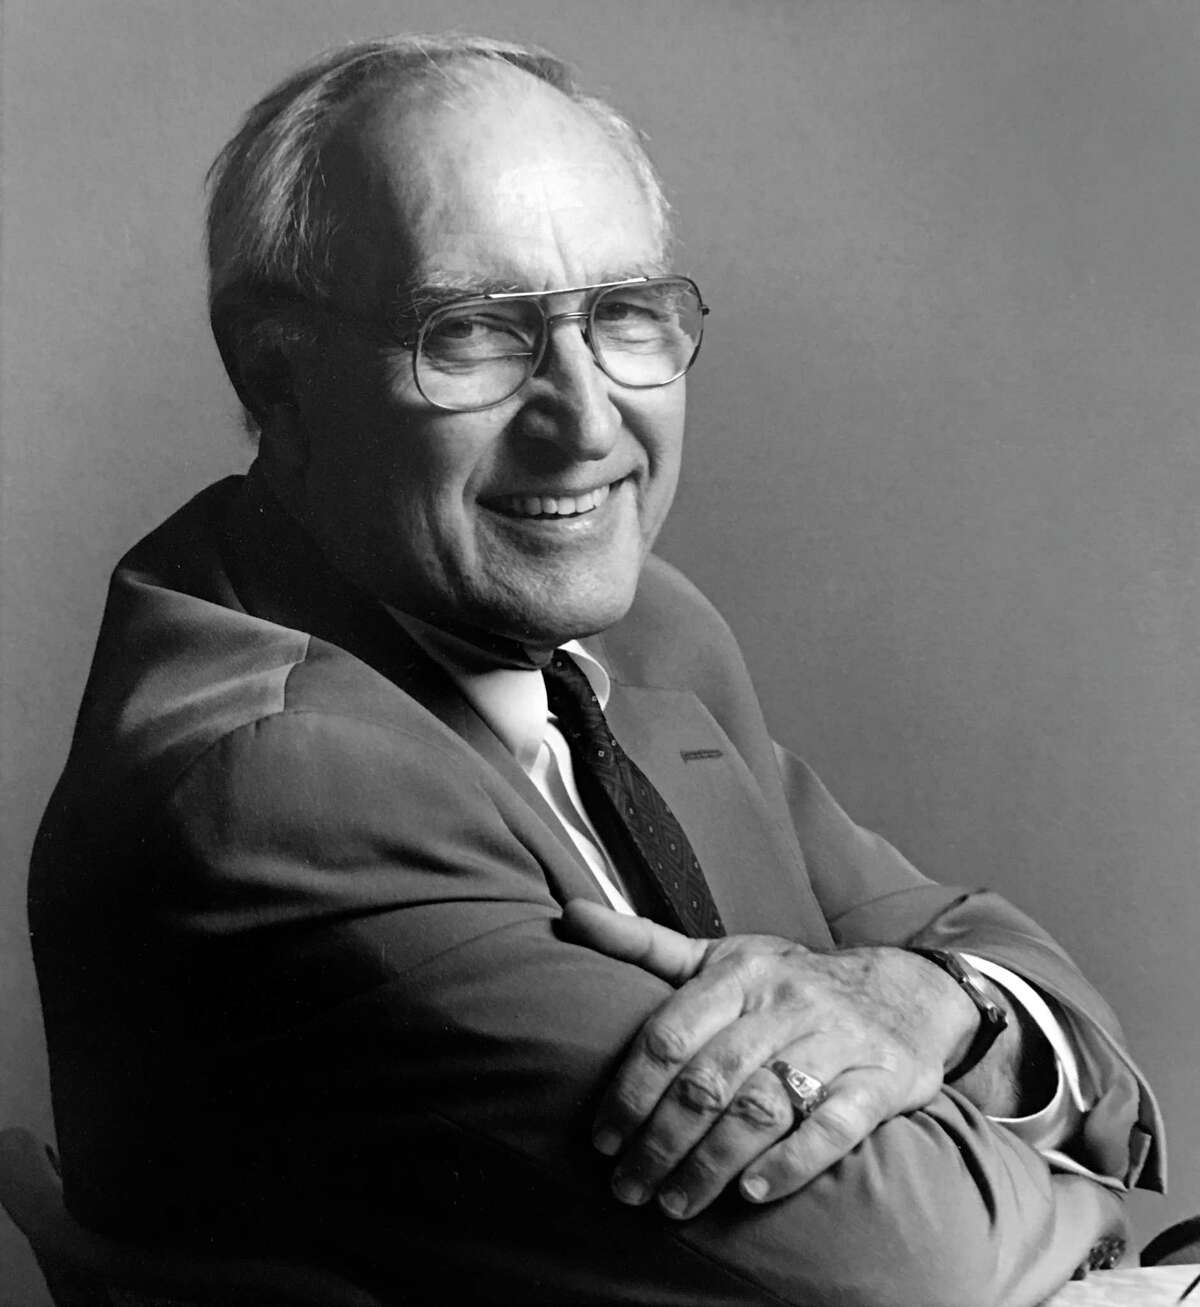 """Architect Ben Koush and Houston Mod are being honored for""""Constructing Houston's Future: The Architecture of Arthur Evan Jones & Lloyd Morgan Jones,"""" which Koush wrote and Houston mod published. Shown is architect Arthur Evan Jones, of the former Lloyd Morgan & Jones architecture firm."""